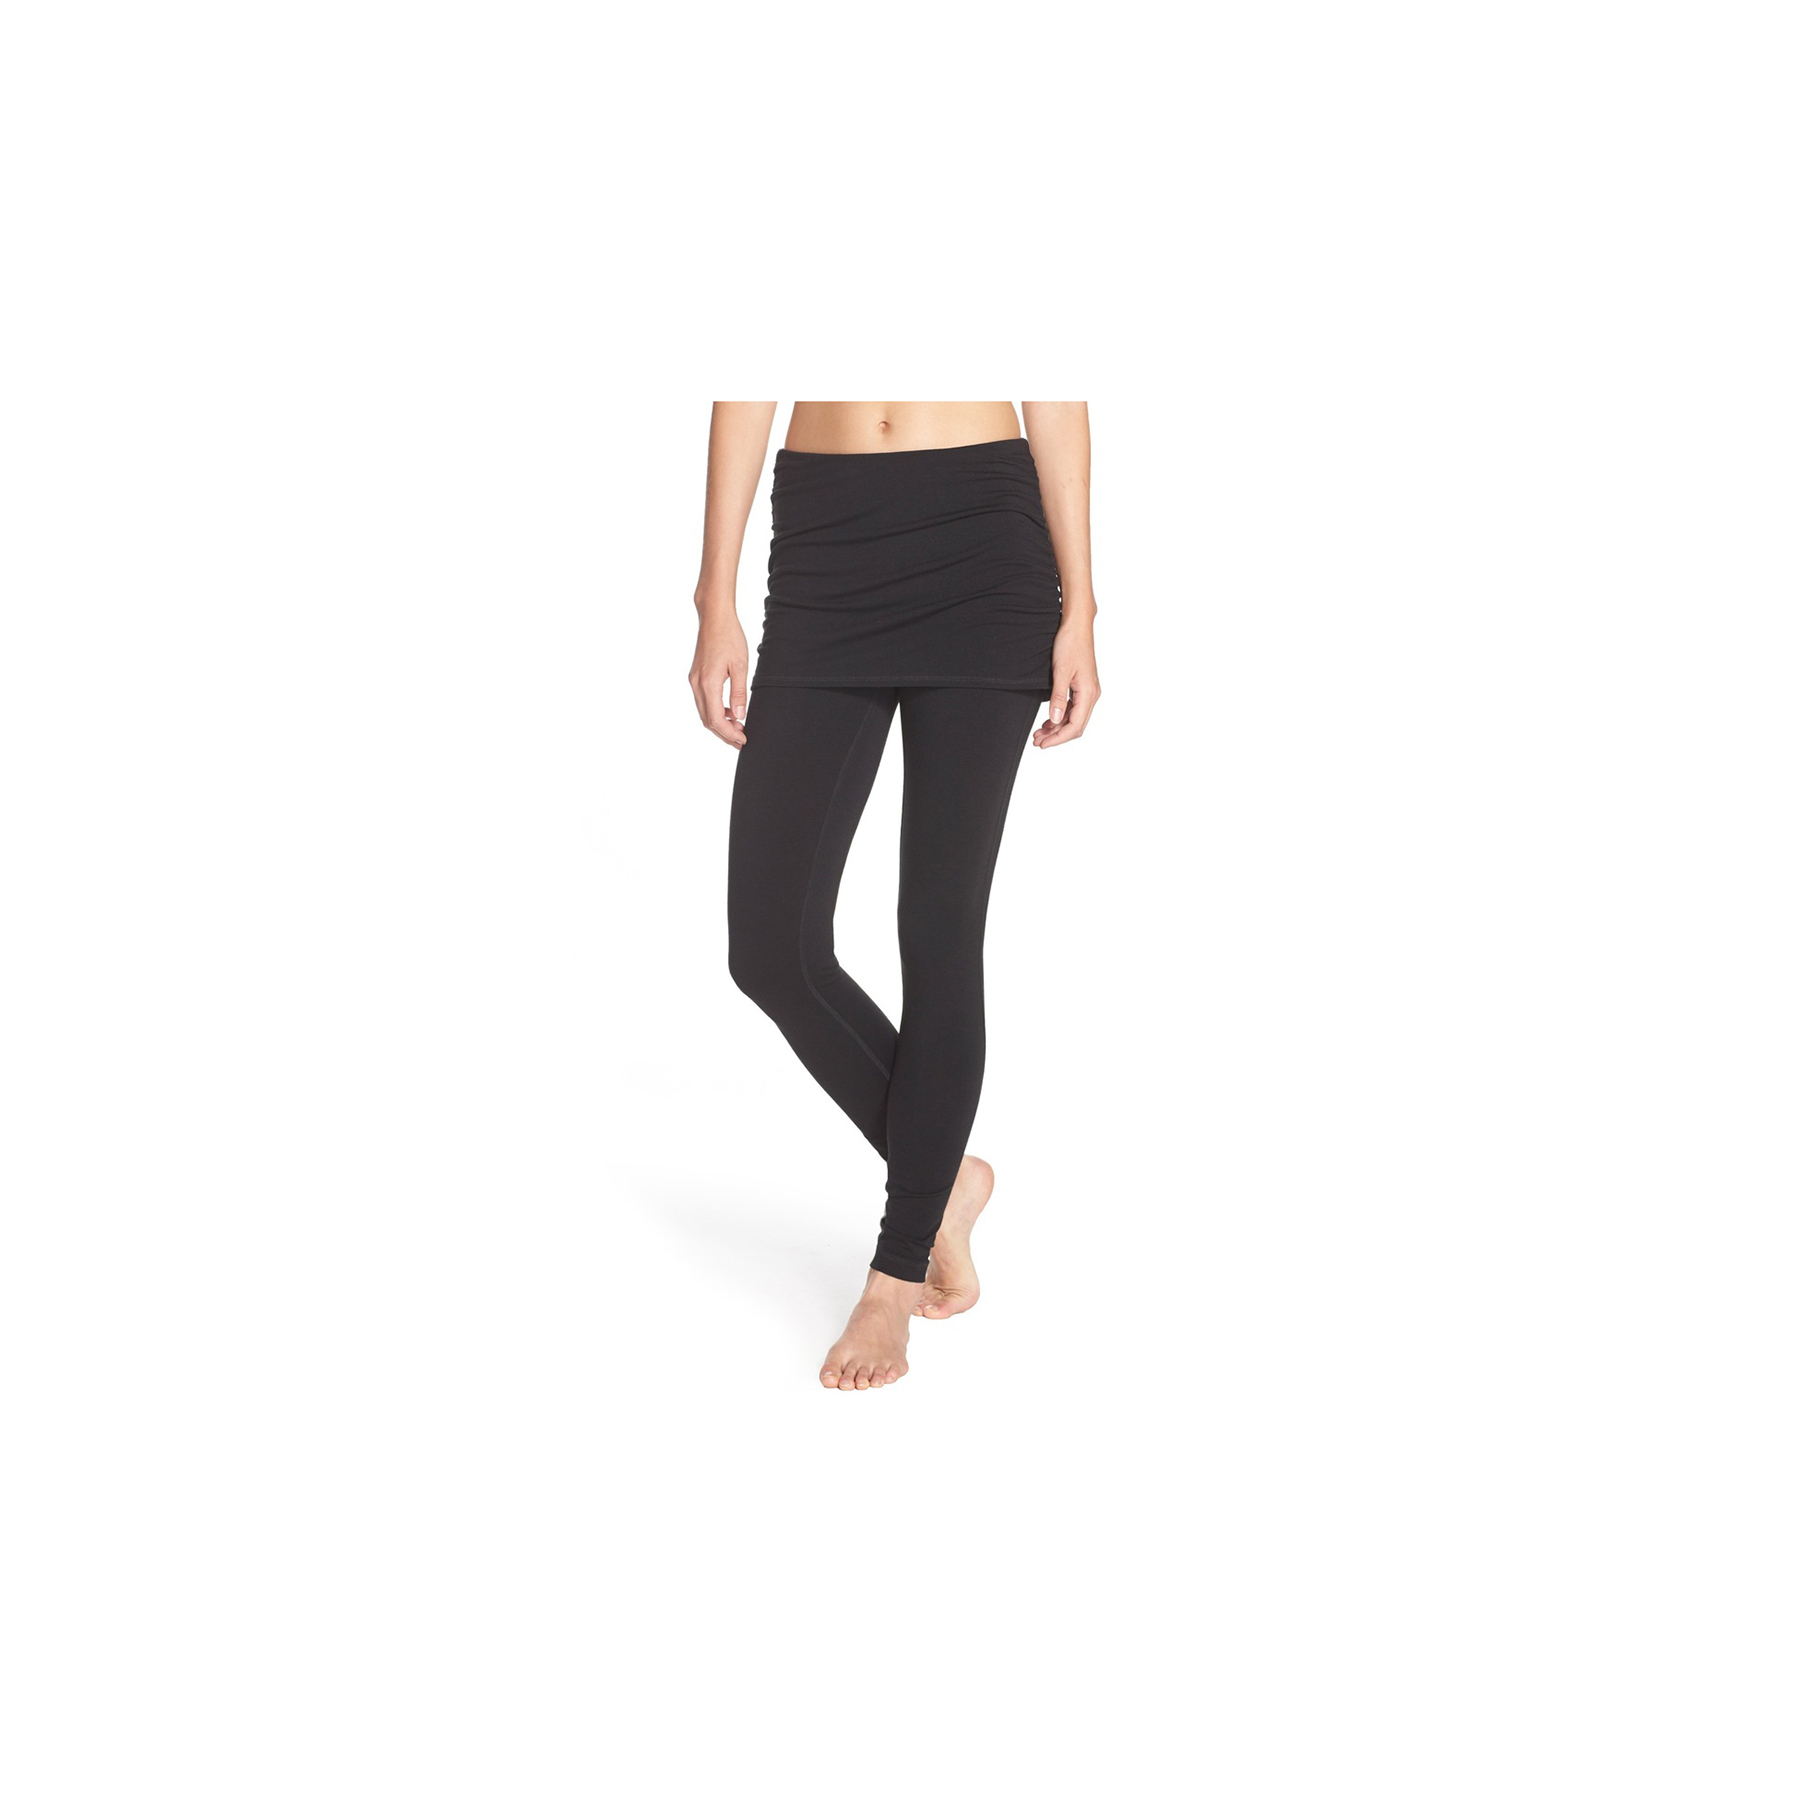 e49276c9f8 7 Black Leggings That Are Perfect for Traveling | Real Simple